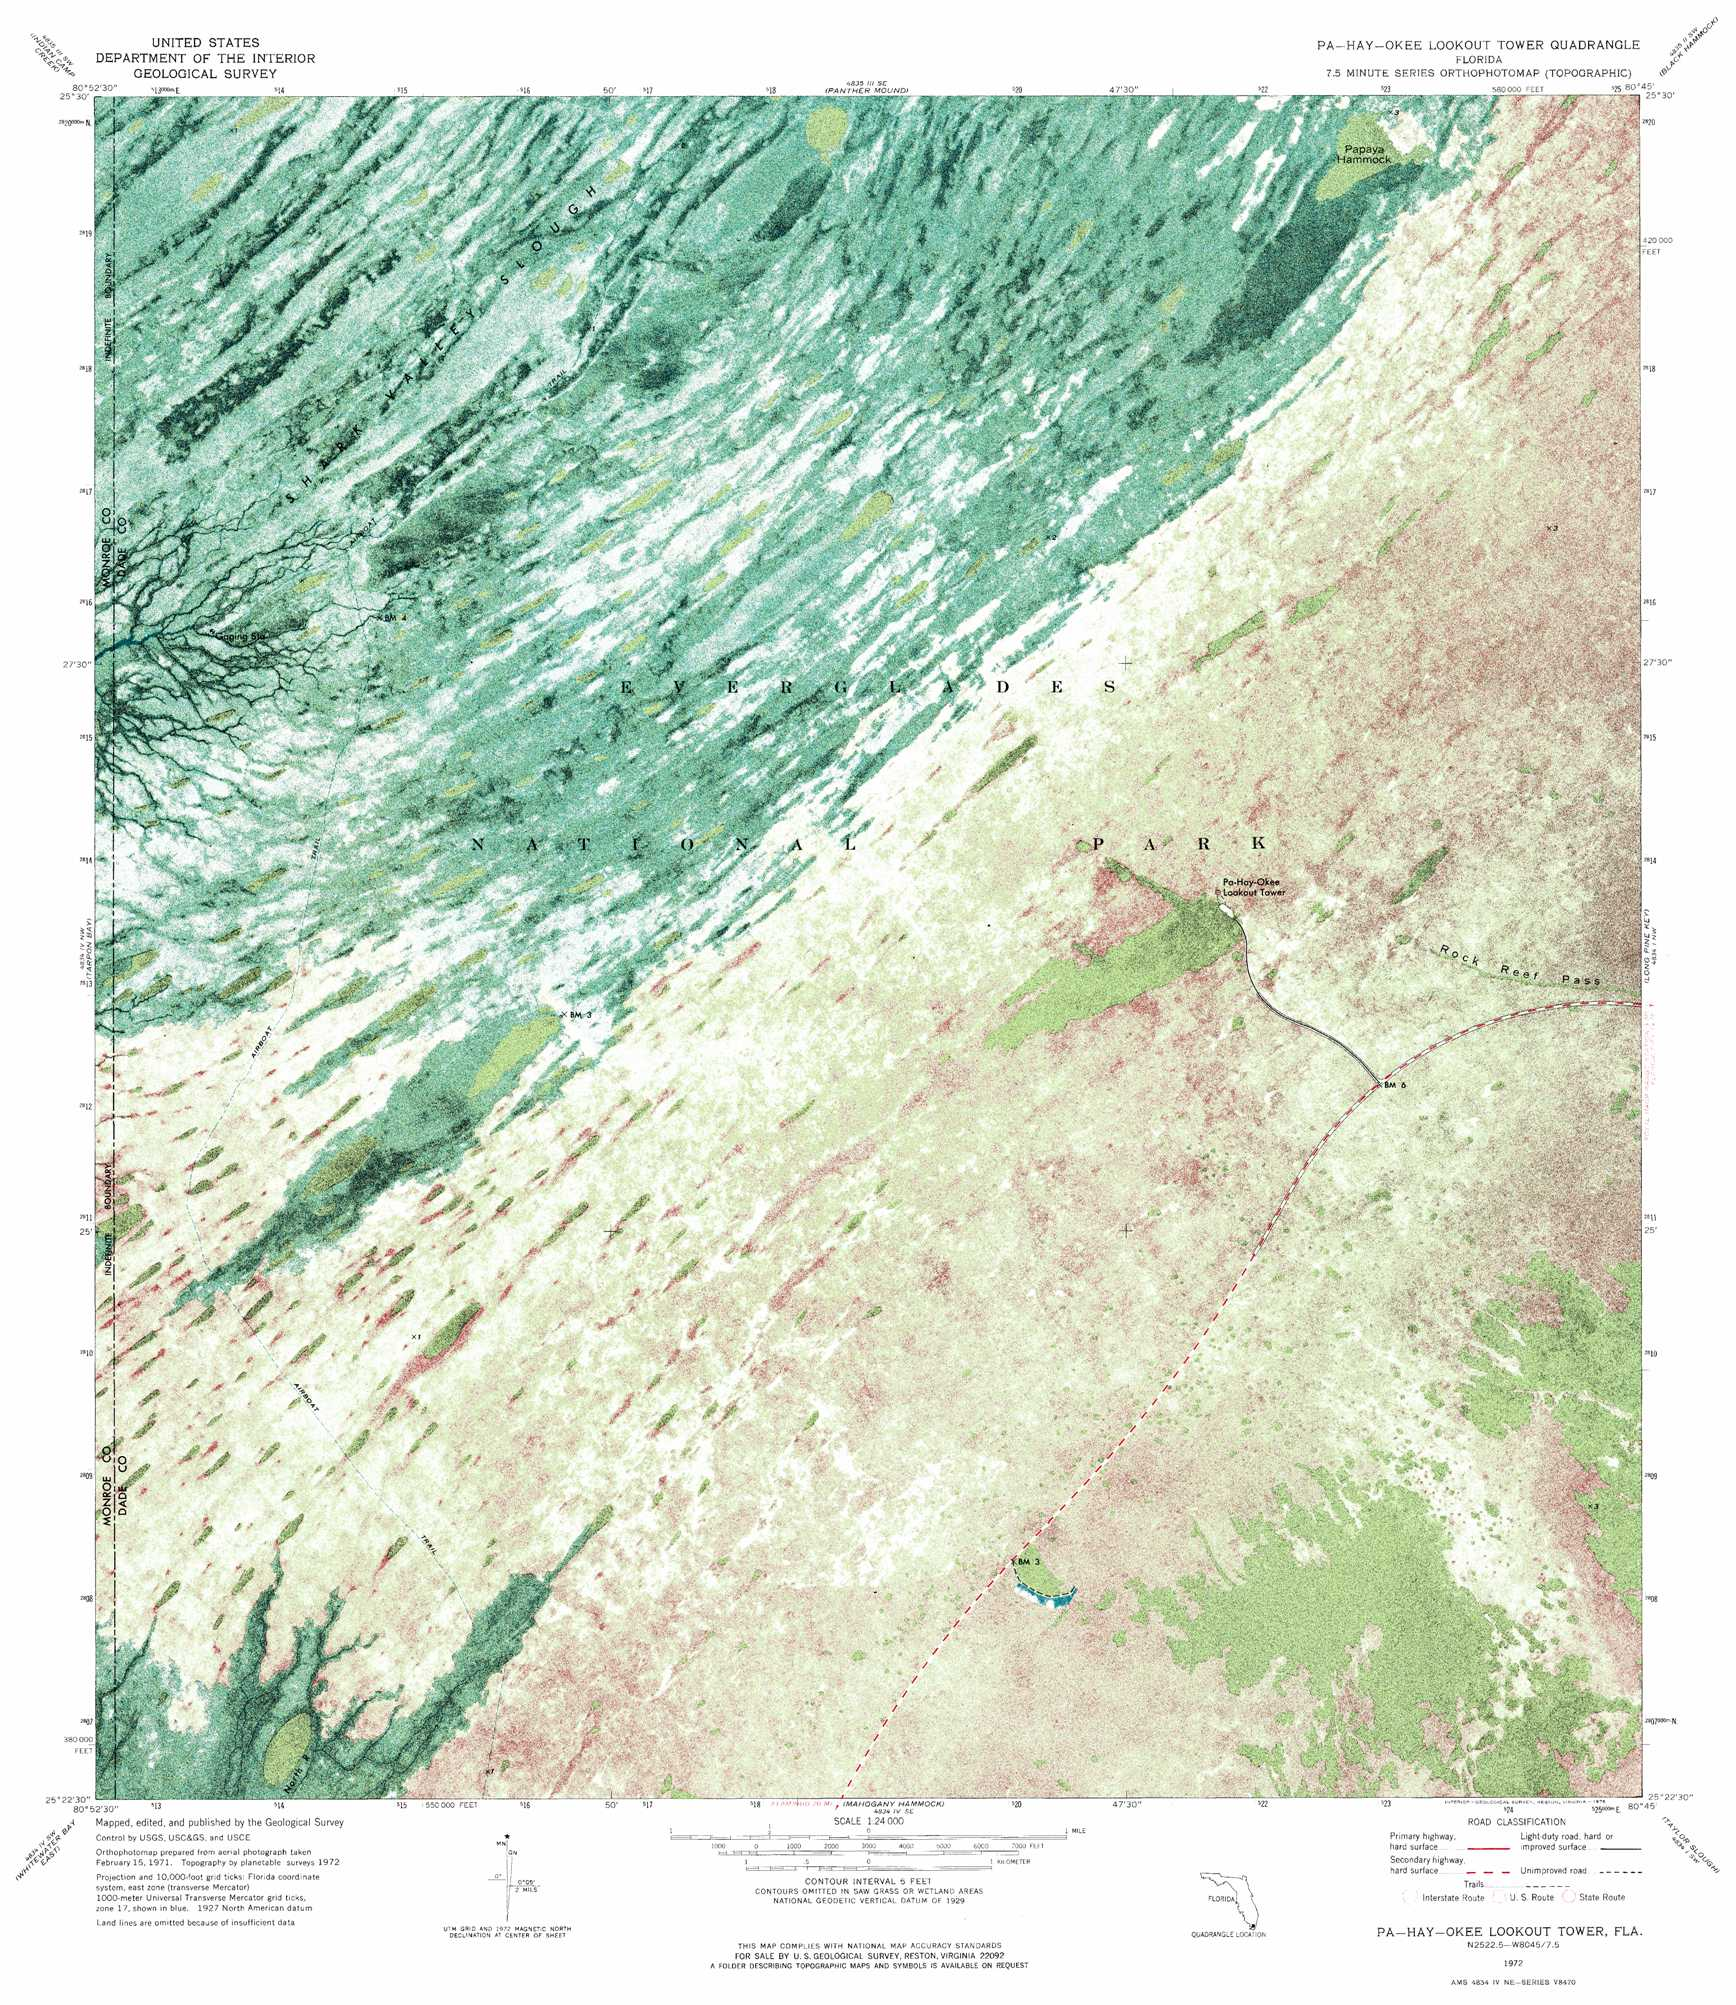 Pa-Hay-Okee Lookout Tower topographic map, FL - USGS Topo Quad 25080d7